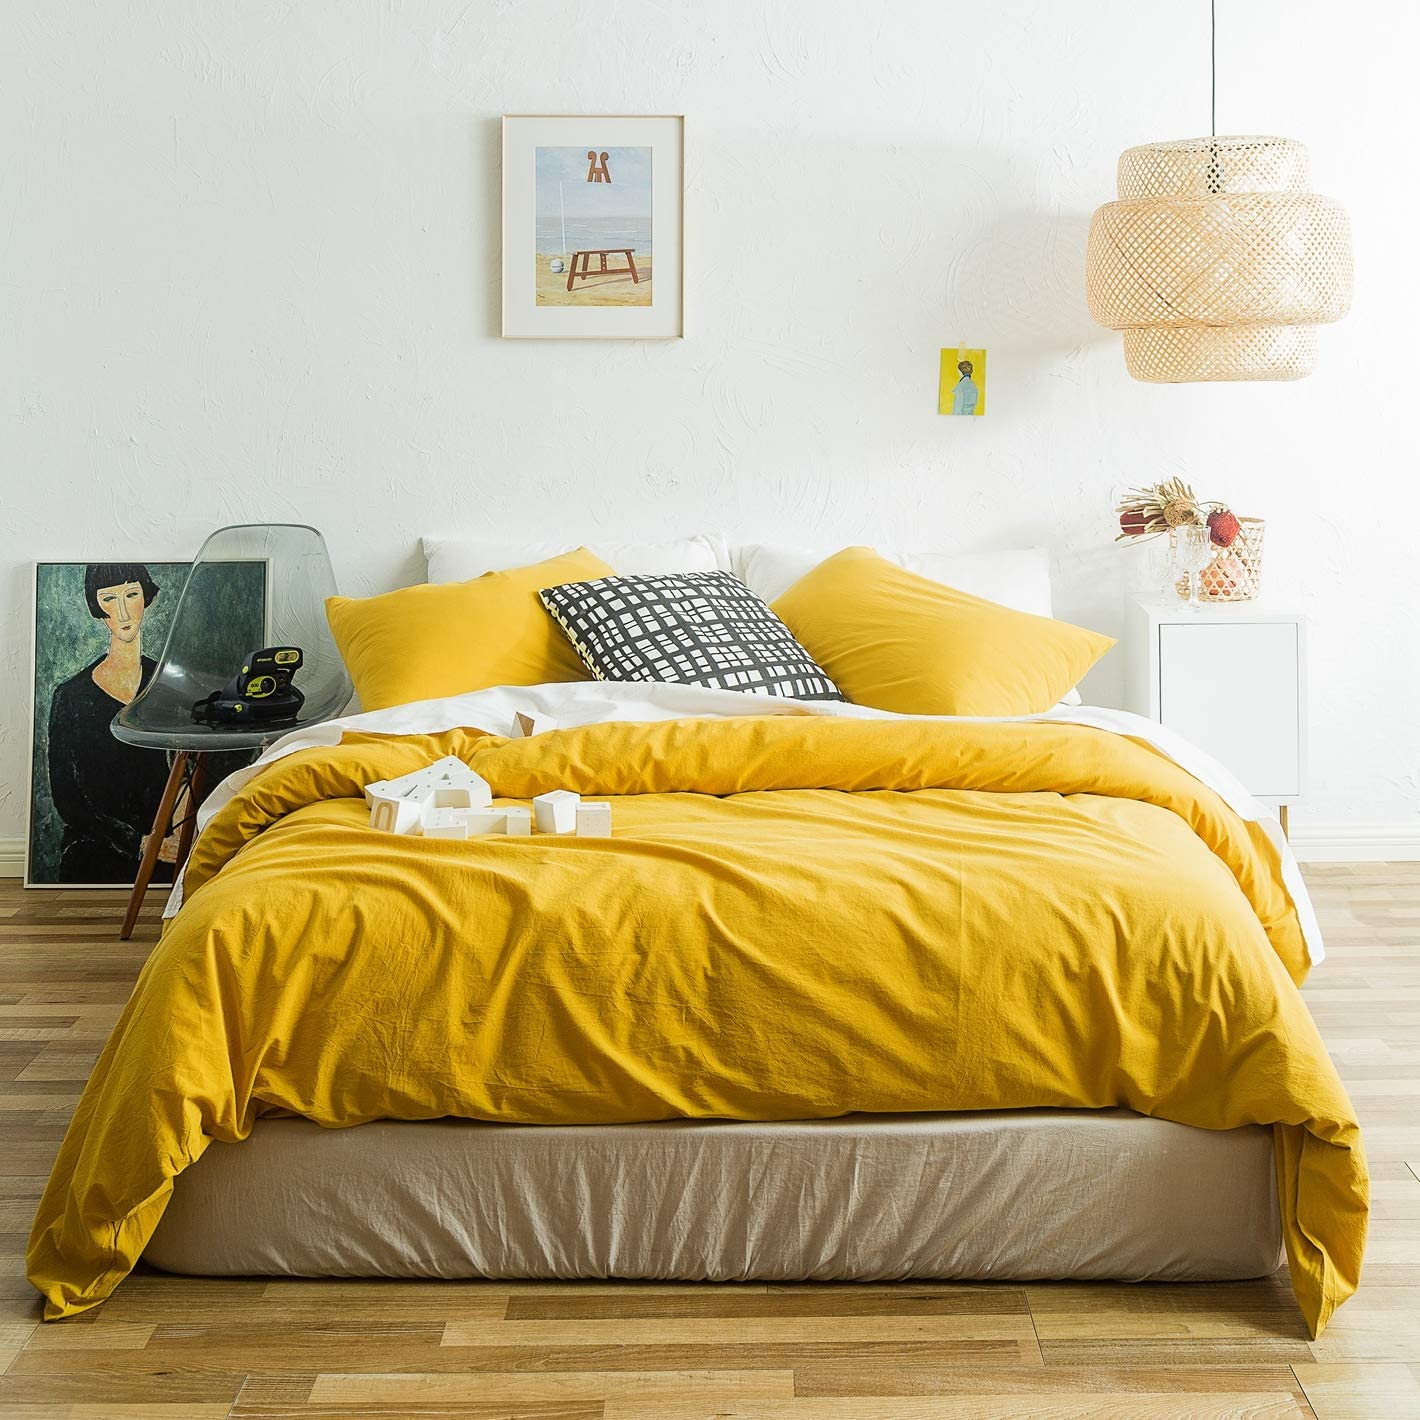 SUSYBAO 3 Piece Duvet Cover Set 100% Natural Washed Cotton Queen Size Yellow Bedding Set 1 Solid Duvet Cover with Hidden Zipper Ties 2 Pillowcases Luxury Quality Soft Comfortable Durable Warm